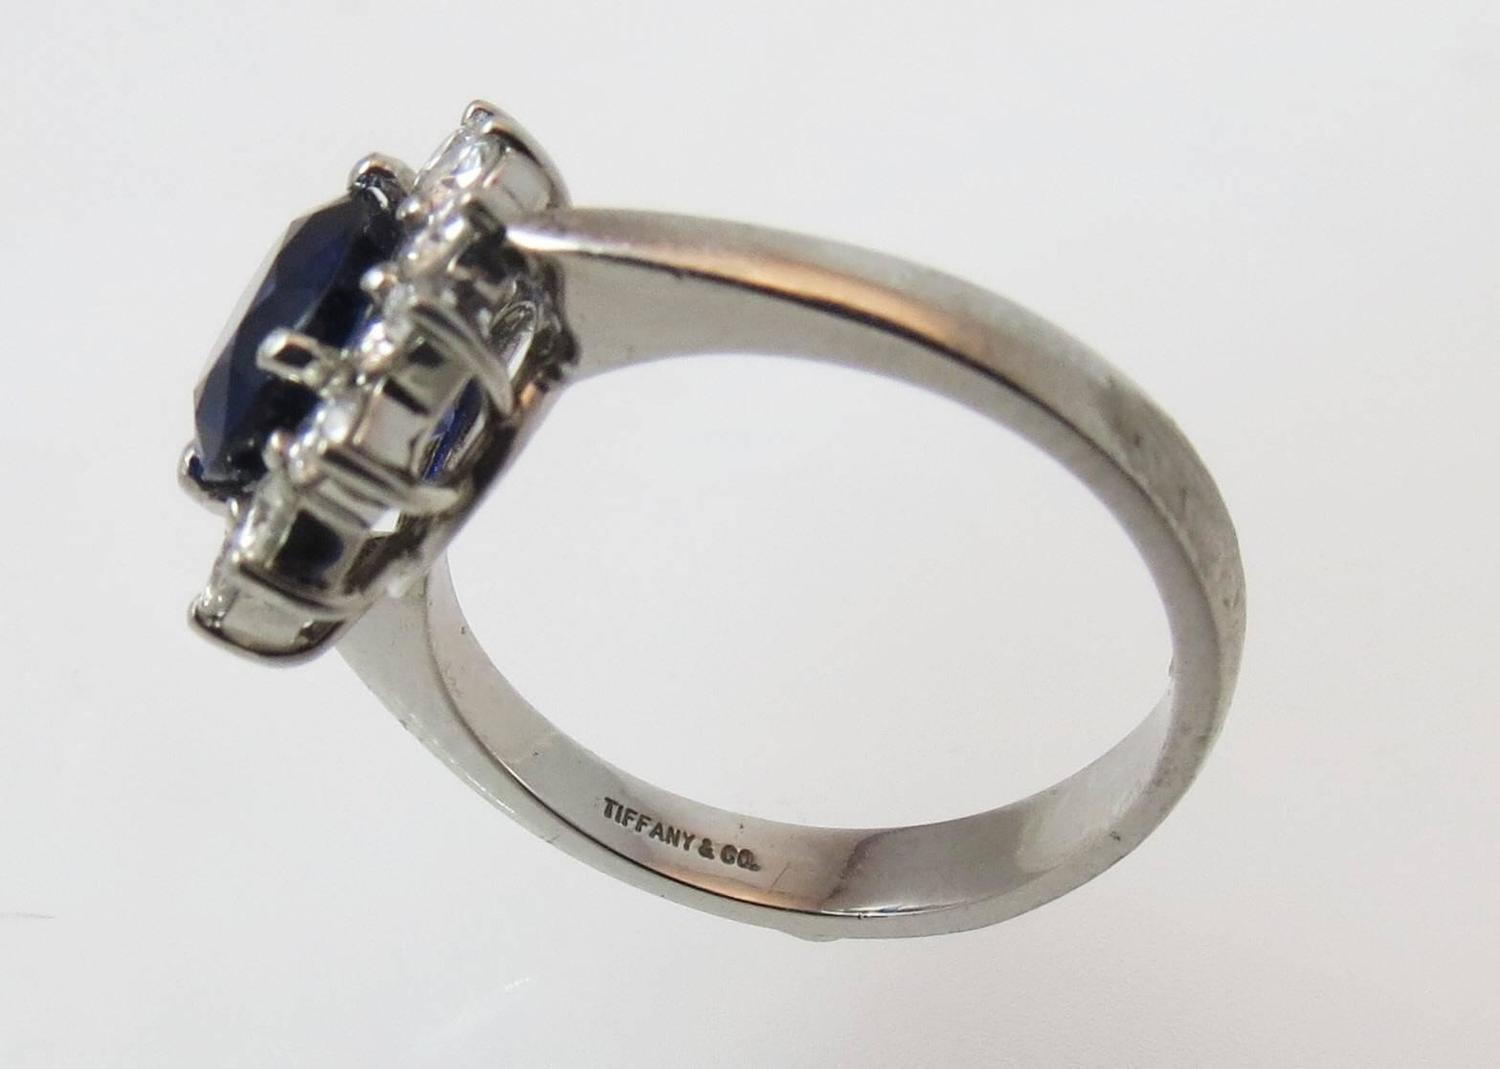 Tiffany La s Oval Blue Sapphire Diamond Platinum Ring For Sale at 1stdibs